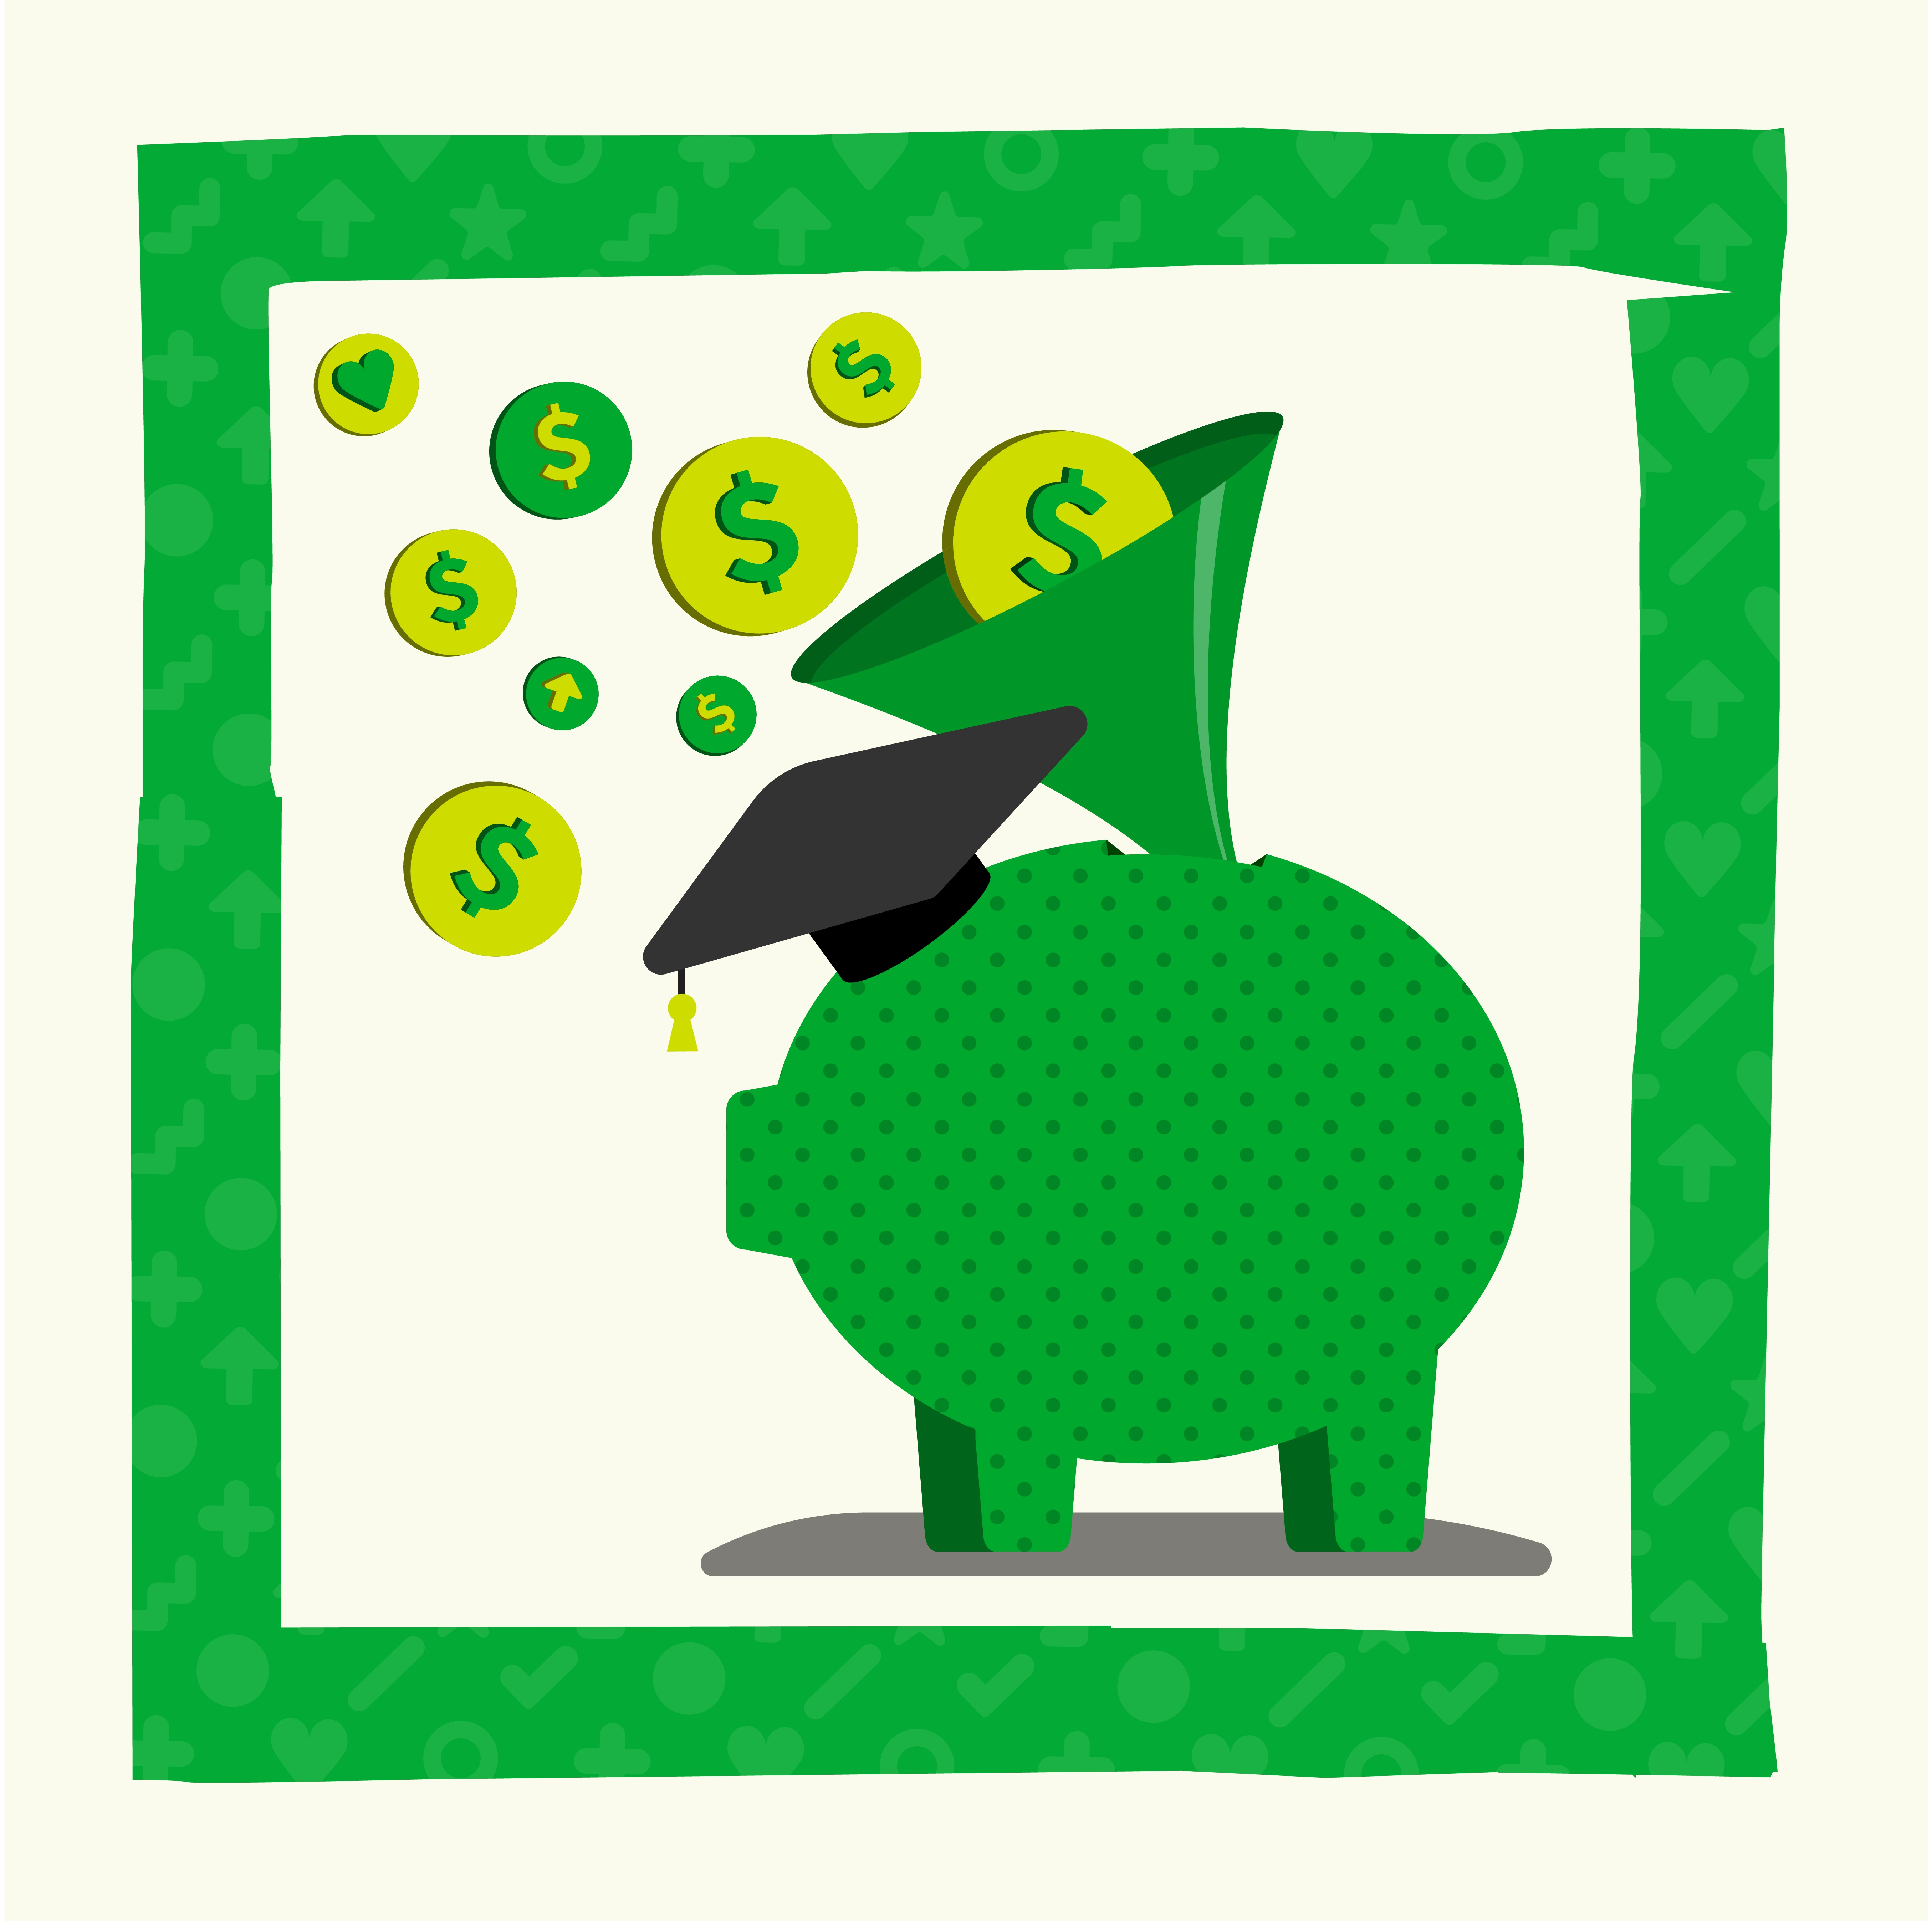 A piggy bank wearing an academic cap, with coins funneling into it.